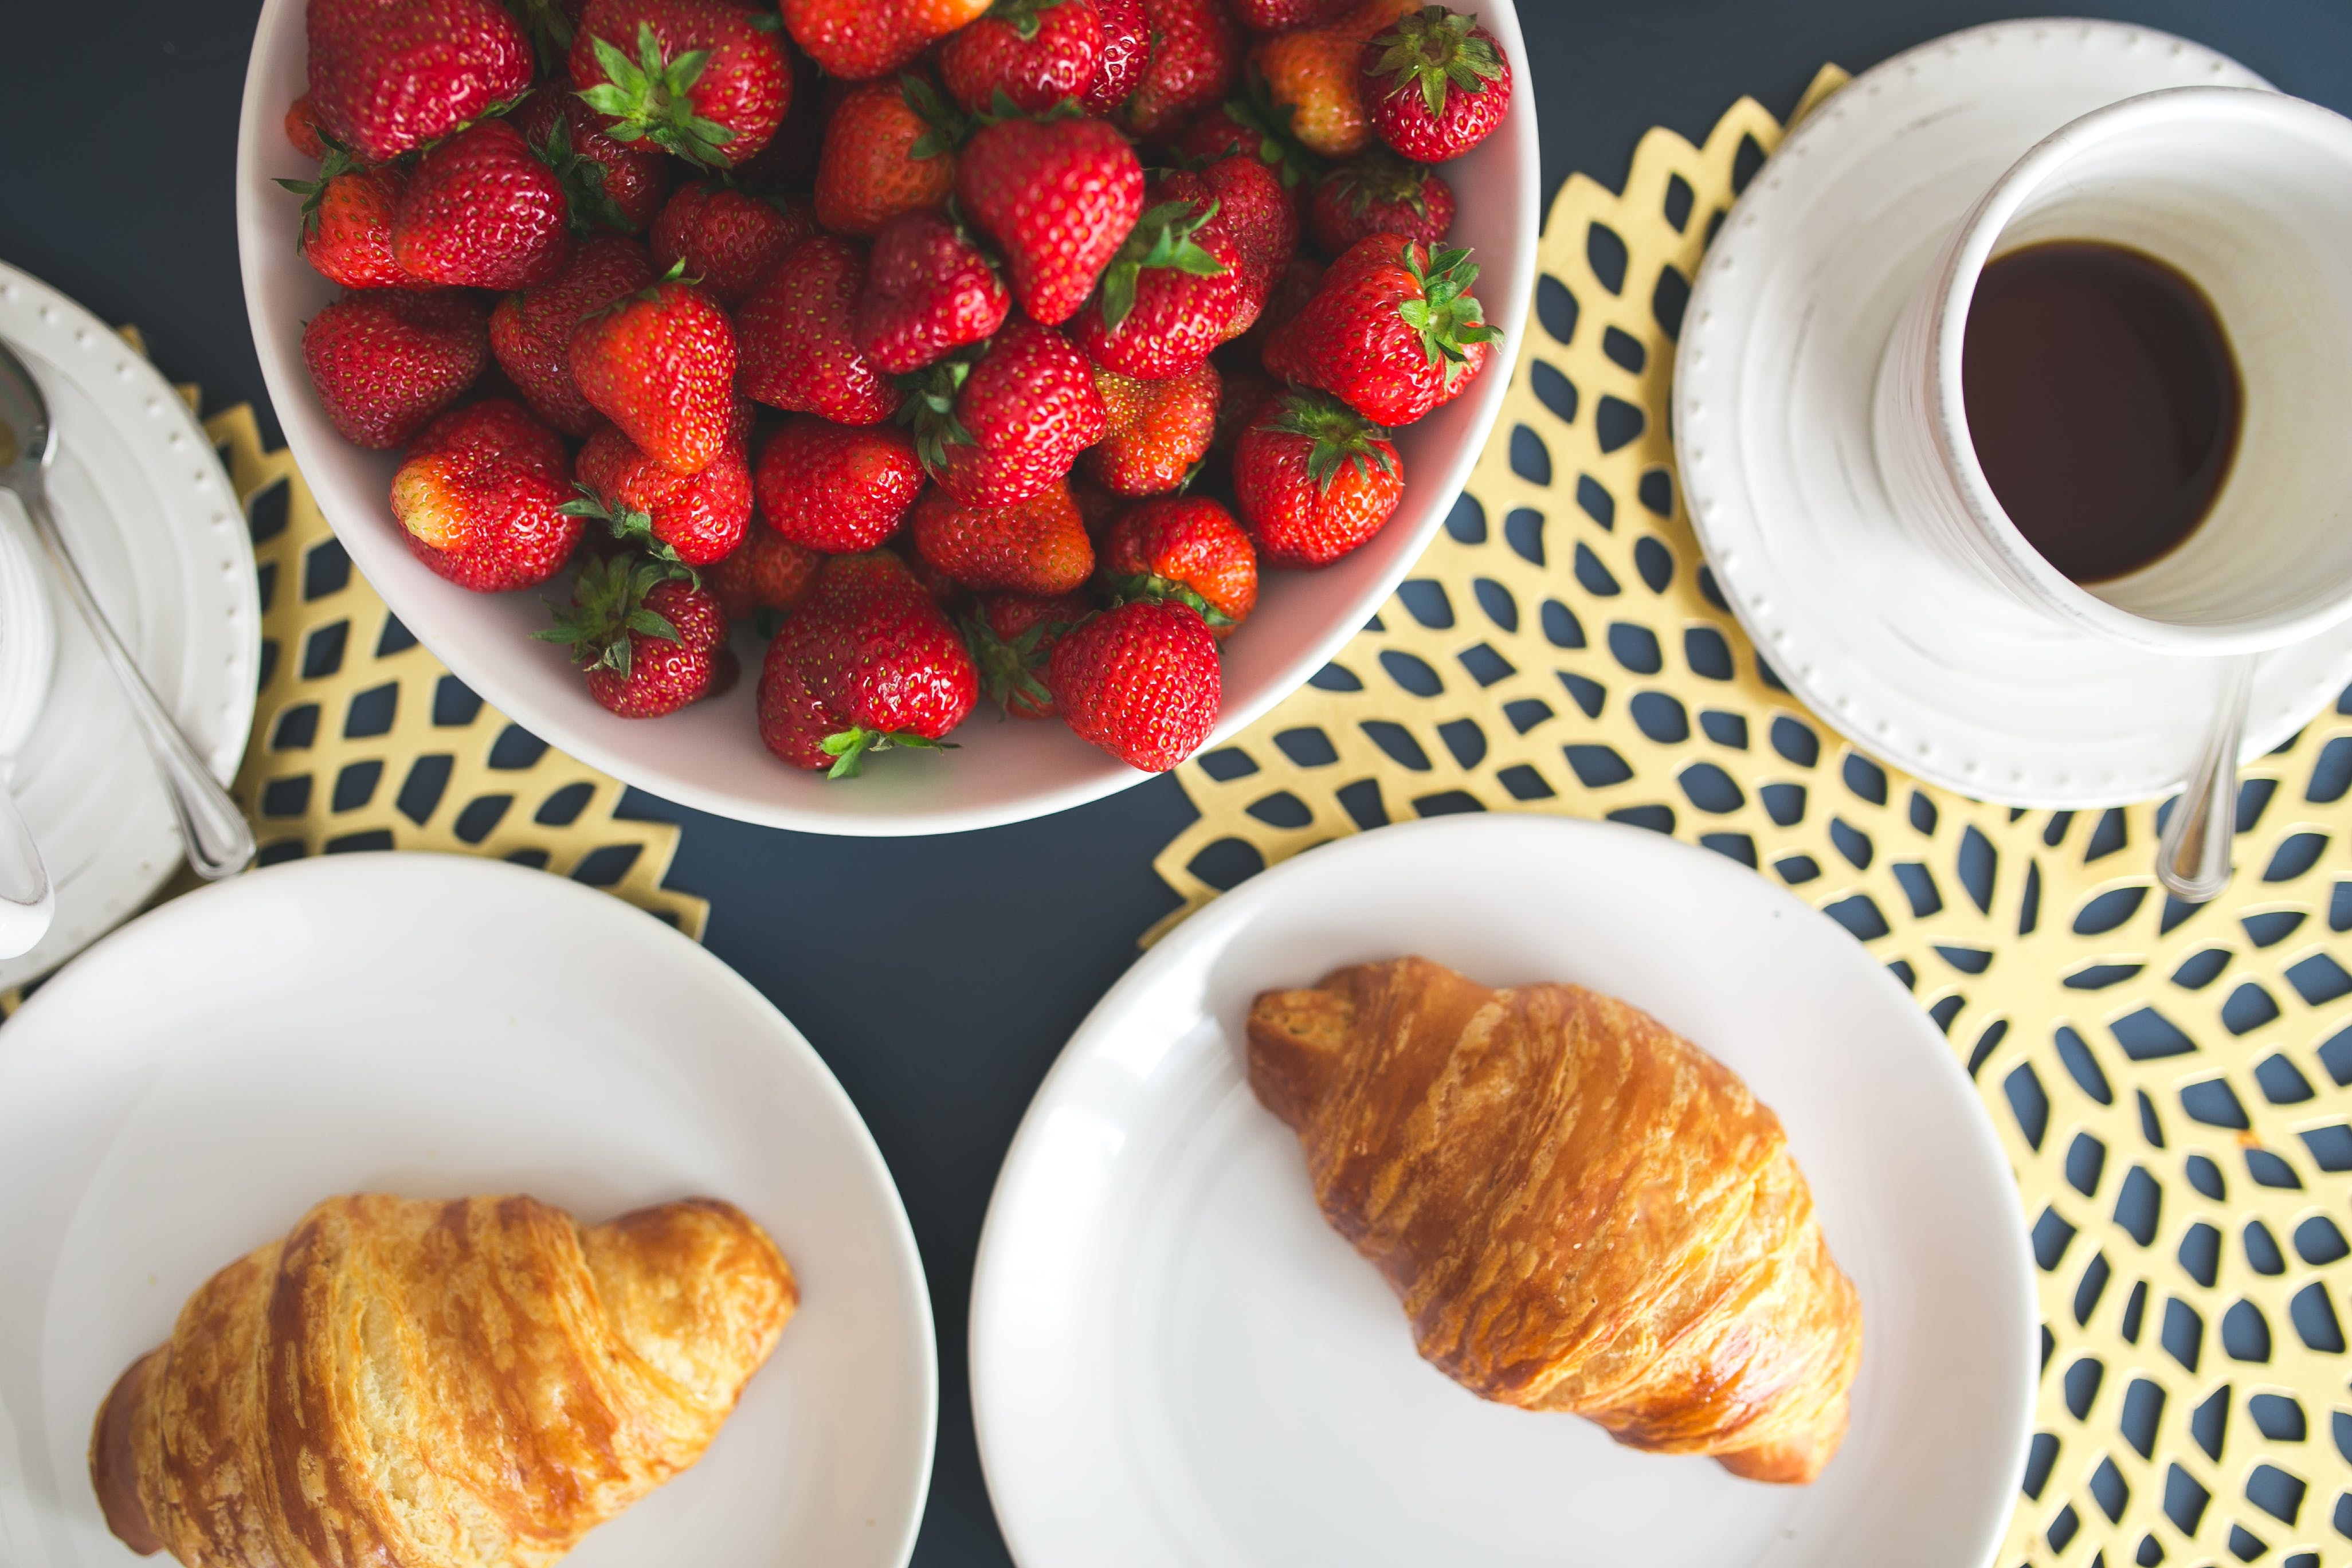 Fresh buttery croissants, hot cup of coffee and bowl with strawberries